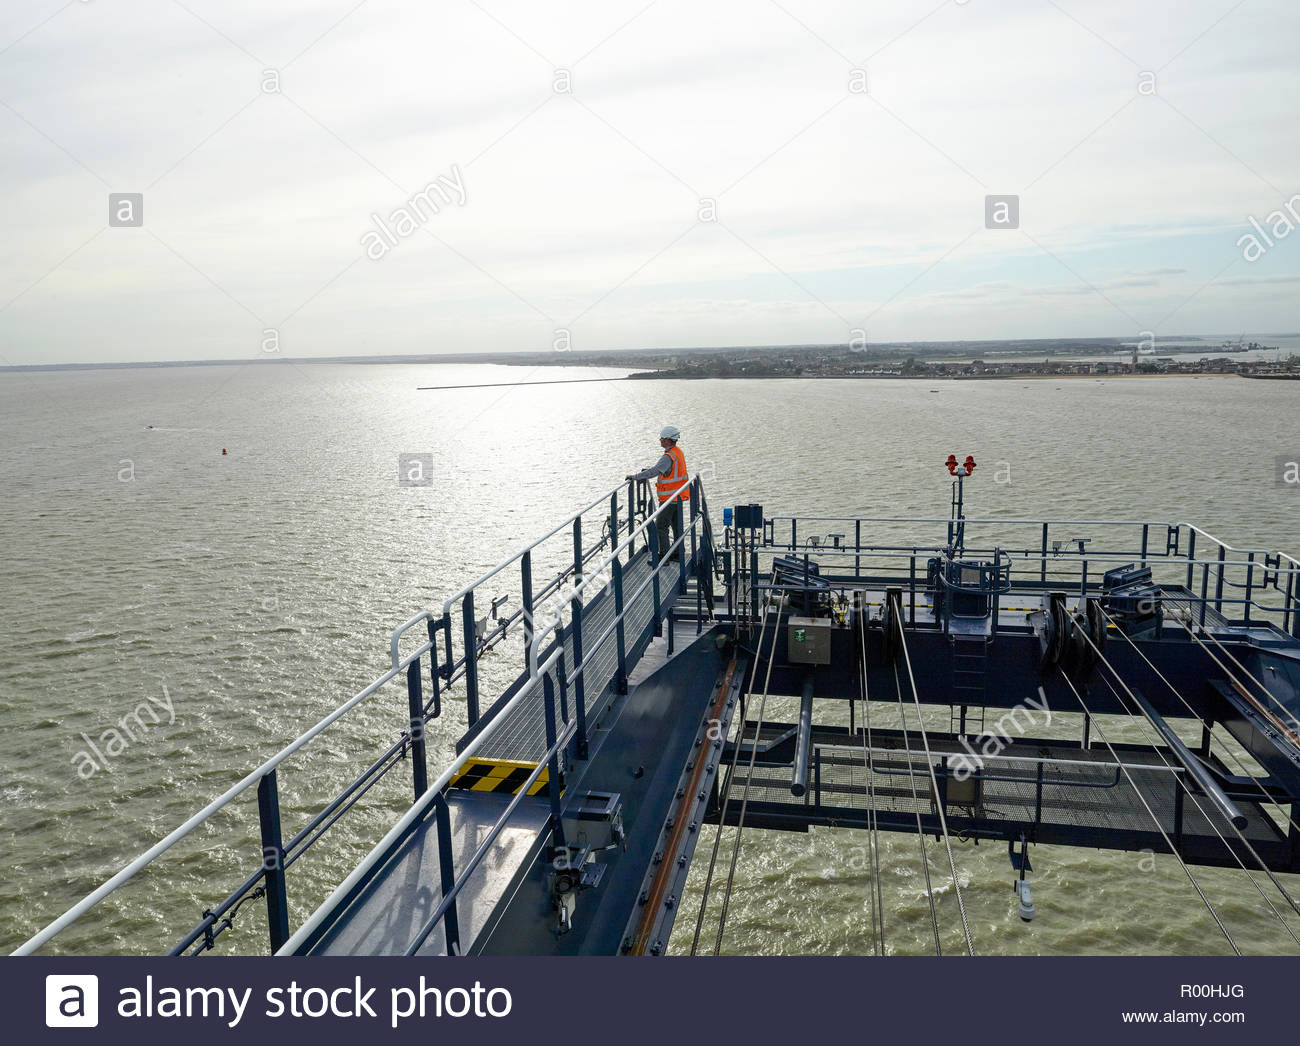 Dock supervisor at the end of crane above cargo ship and container looking out to sea Stock Photo